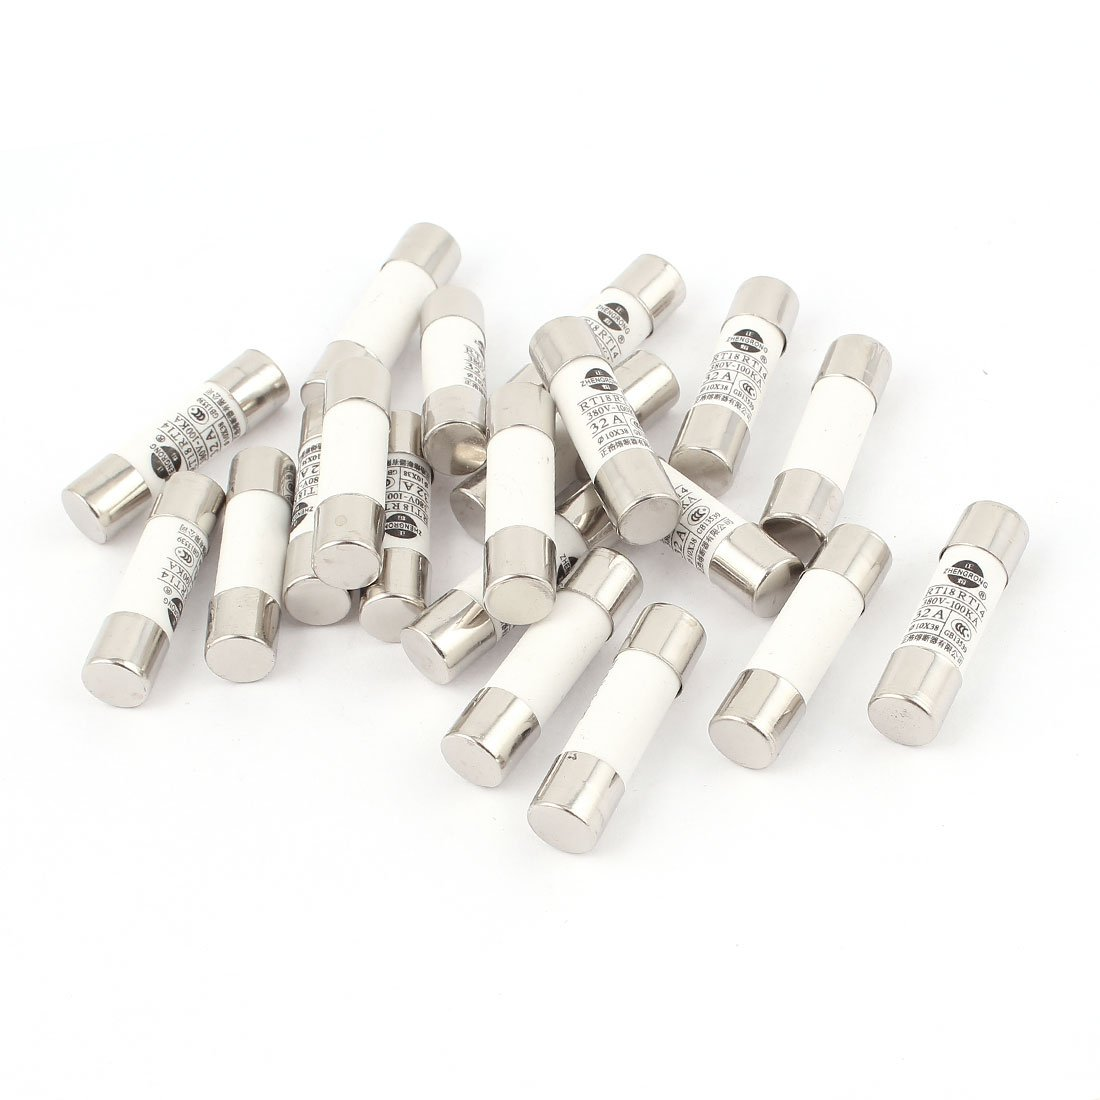 uxcell20 Pcs RO15 RT18 RT14 Ceramic Cylindrical Tube Fuse 32A 380V 10x38mm TRTASJNIEJ2129